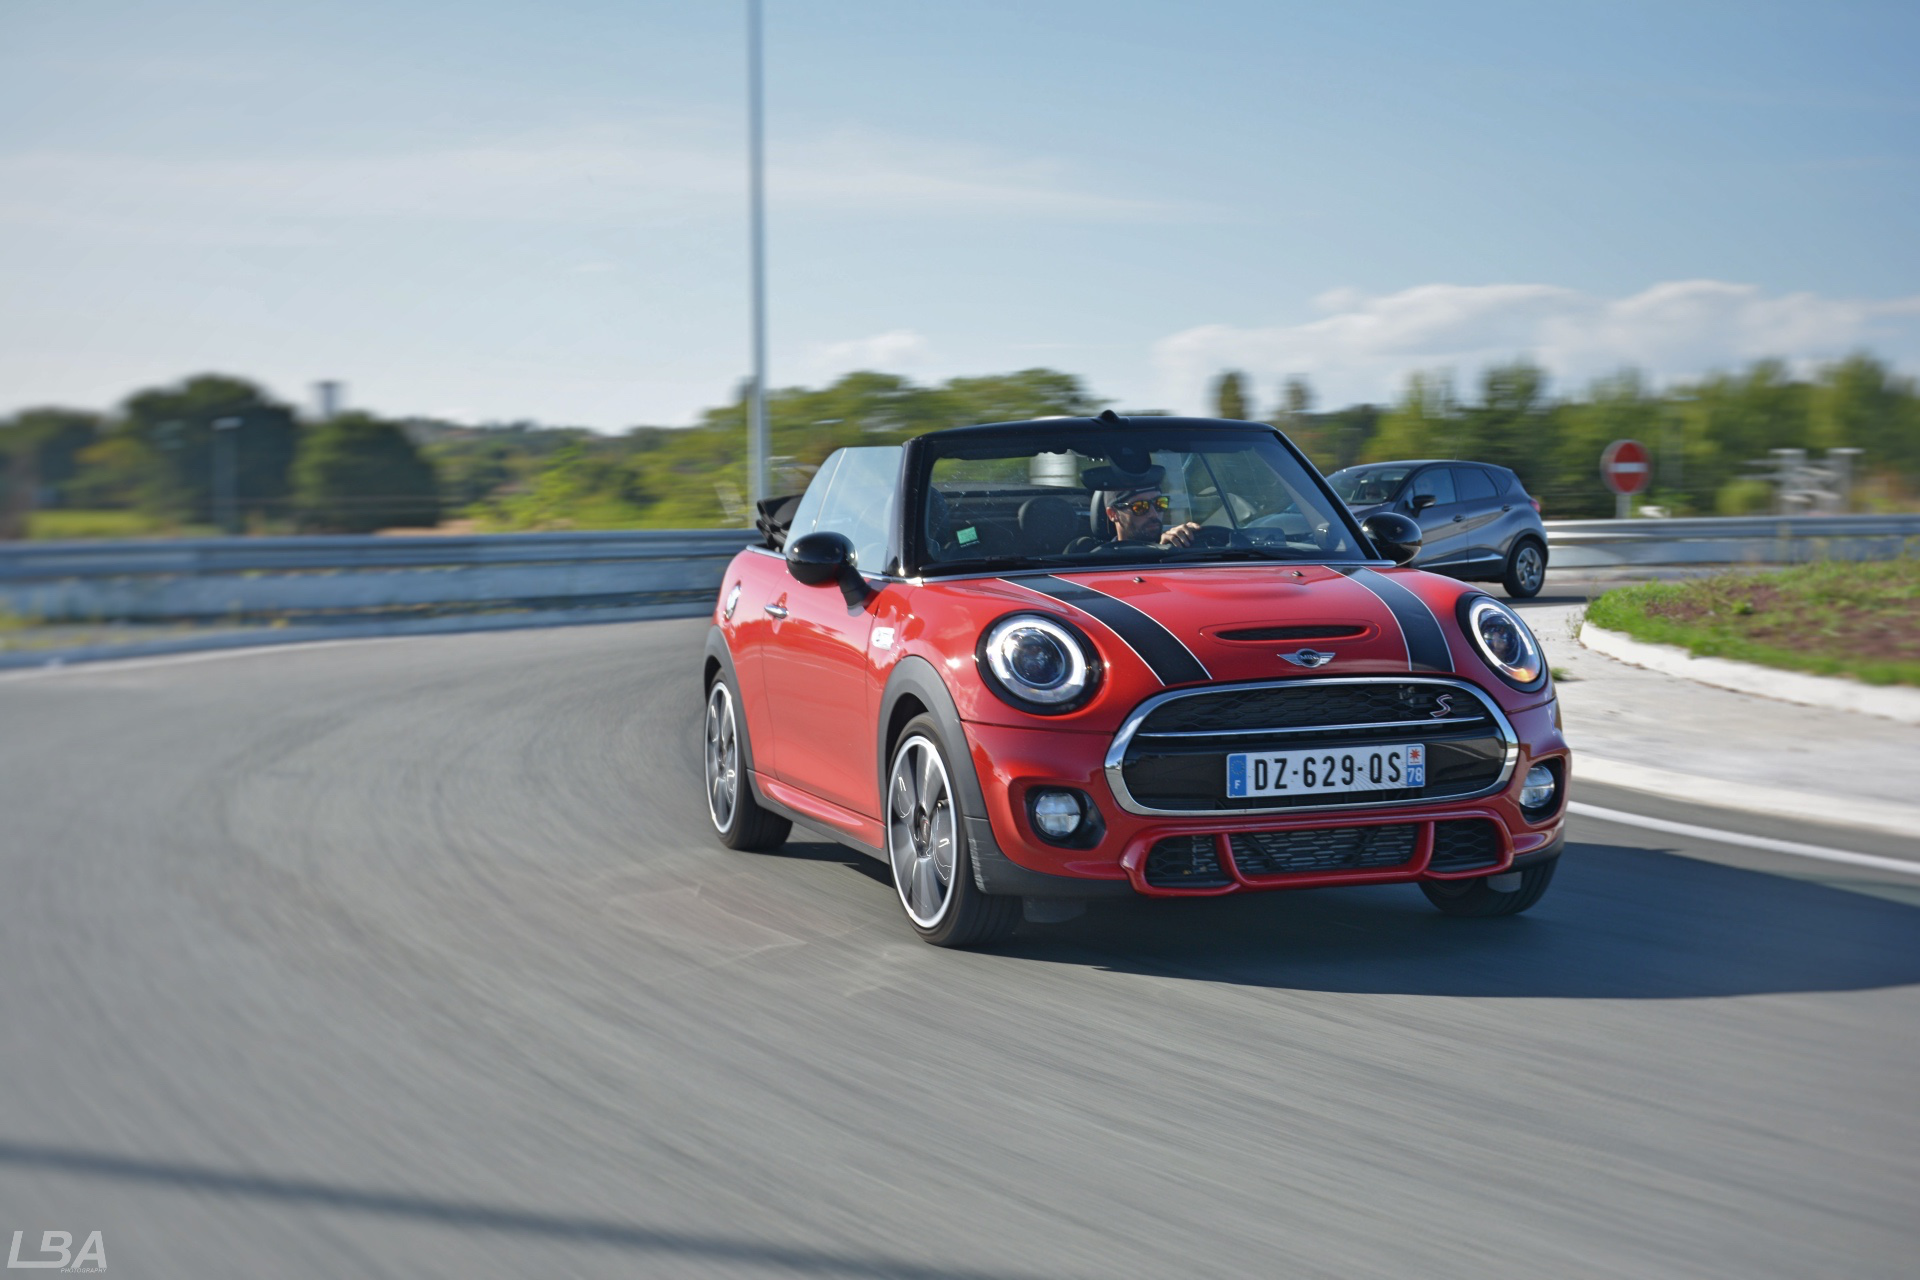 essai mini cooper s cabrio pack jcw le billet auto test drive. Black Bedroom Furniture Sets. Home Design Ideas